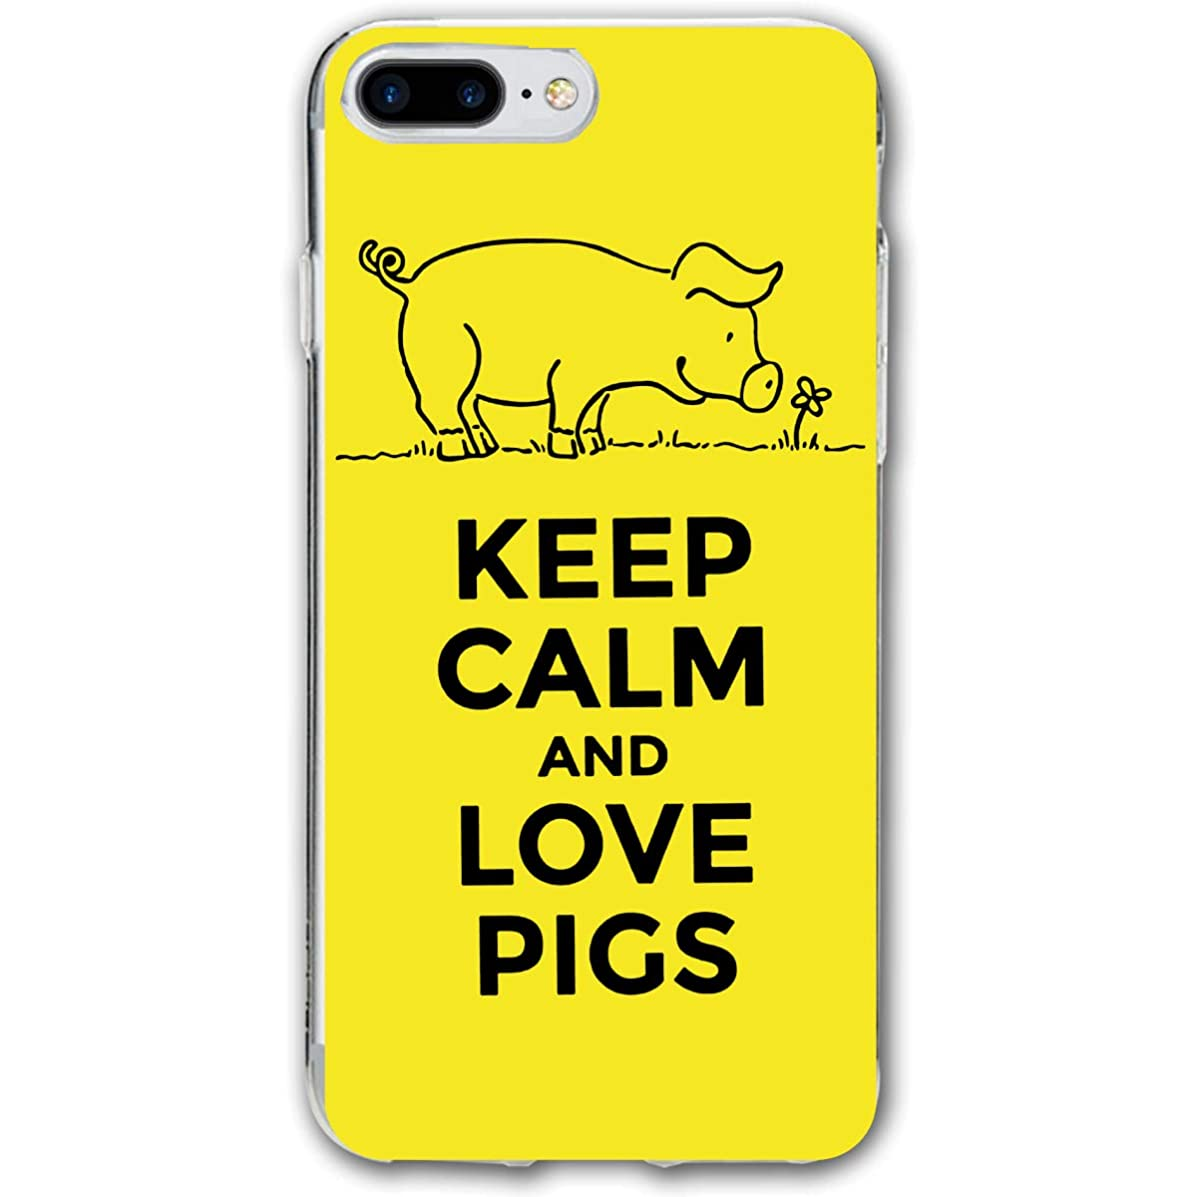 customgogo for iPhone 7 Plus Case, for iPhone 8 Plus Case, Keep Calm and Love Pigs Soft Silicone Gel Rubber Bumper Case Shell Shockproof Full-Body Protective Case Cover for iPhone 7 Plus /8 Plus 5.5